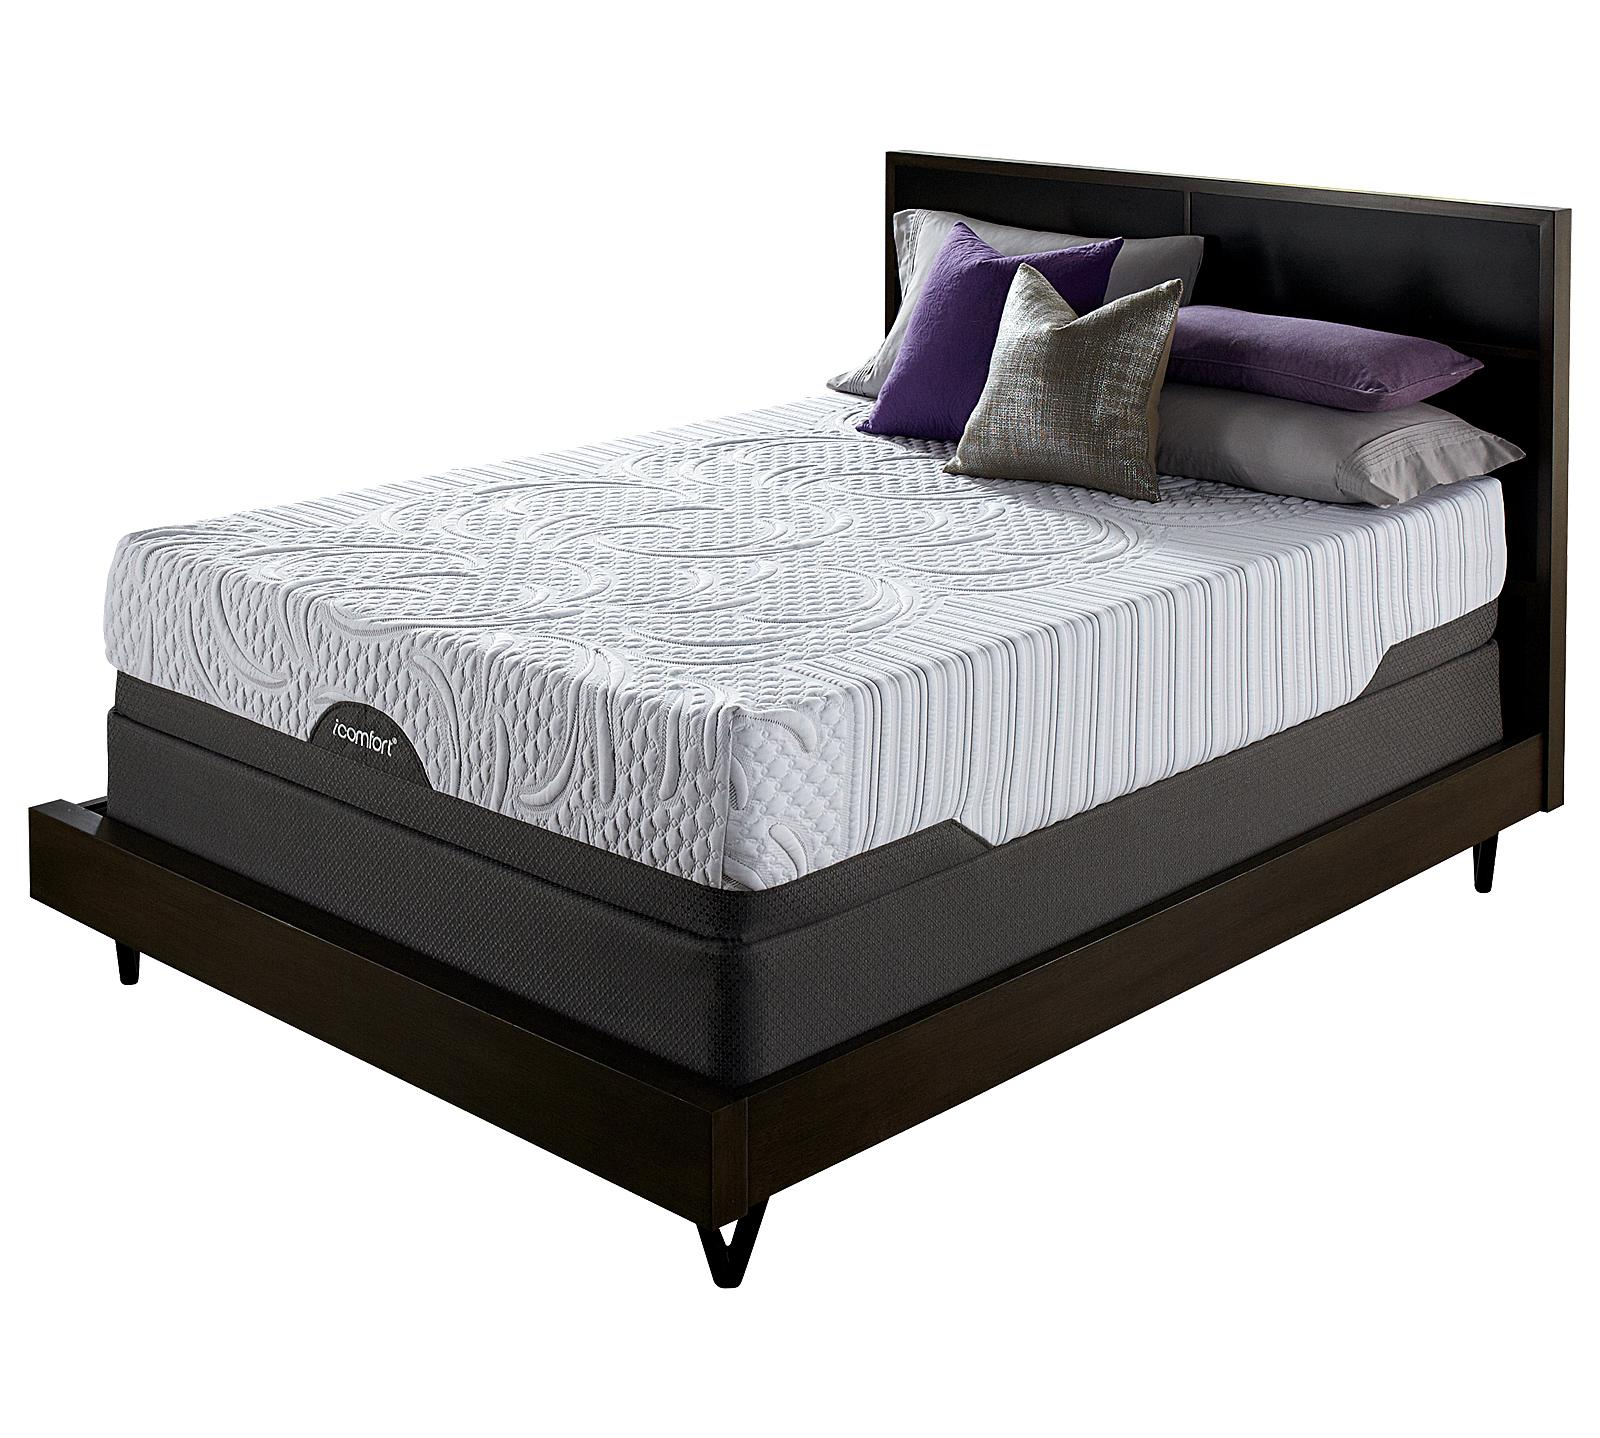 Motion perfect by serta twin extra long adjustable base bed mattress sale Twin mattress sales